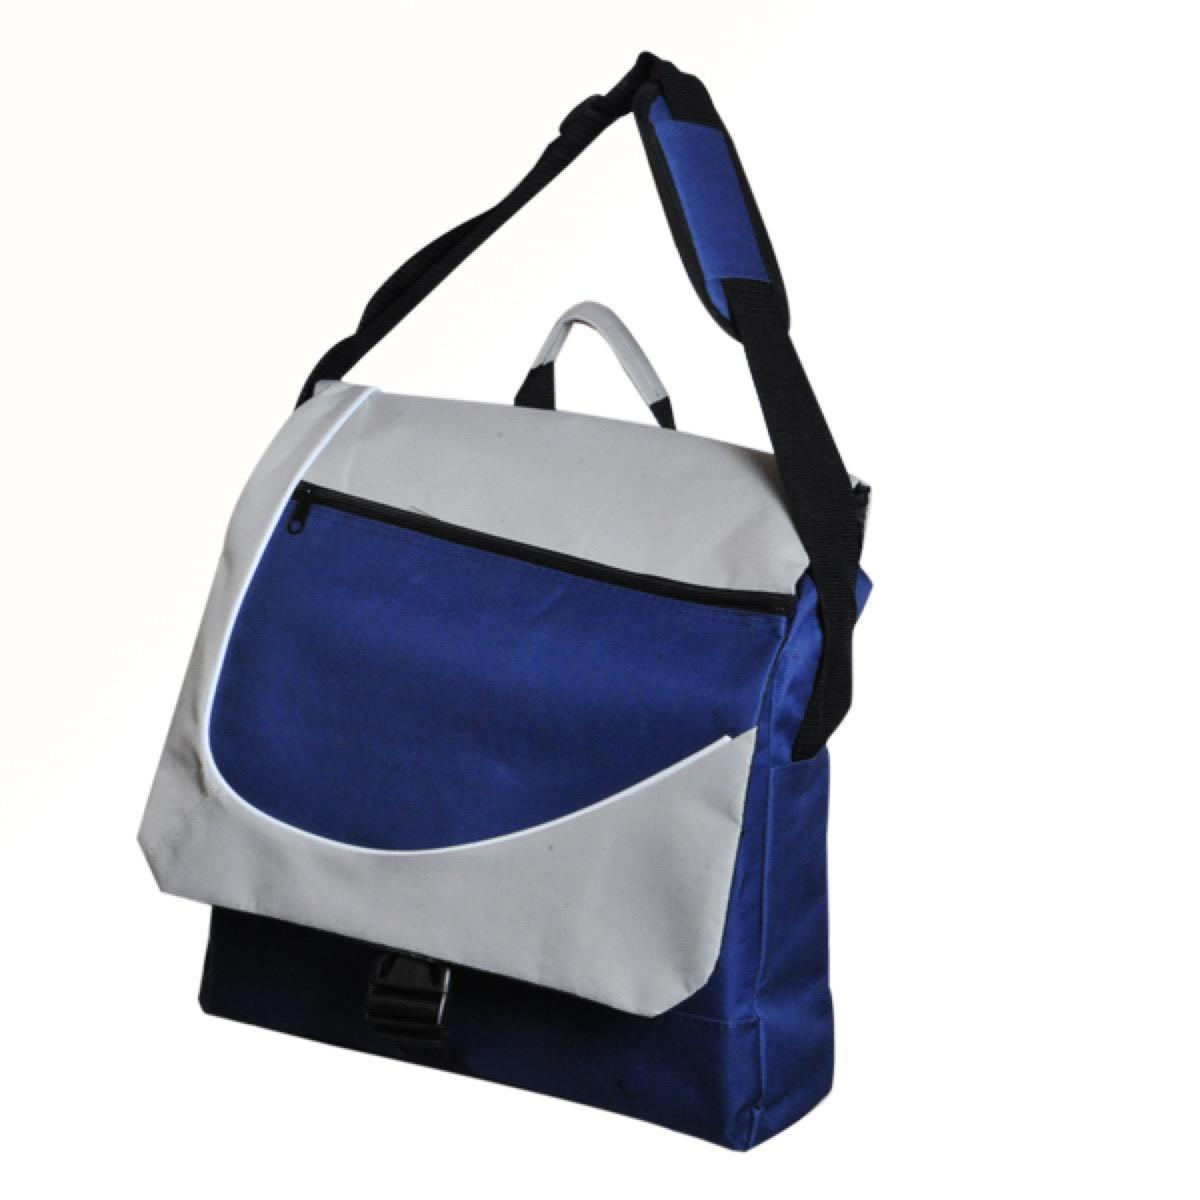 Conference Satchel  -  Includes a 1 colour printed logo, From $5.59